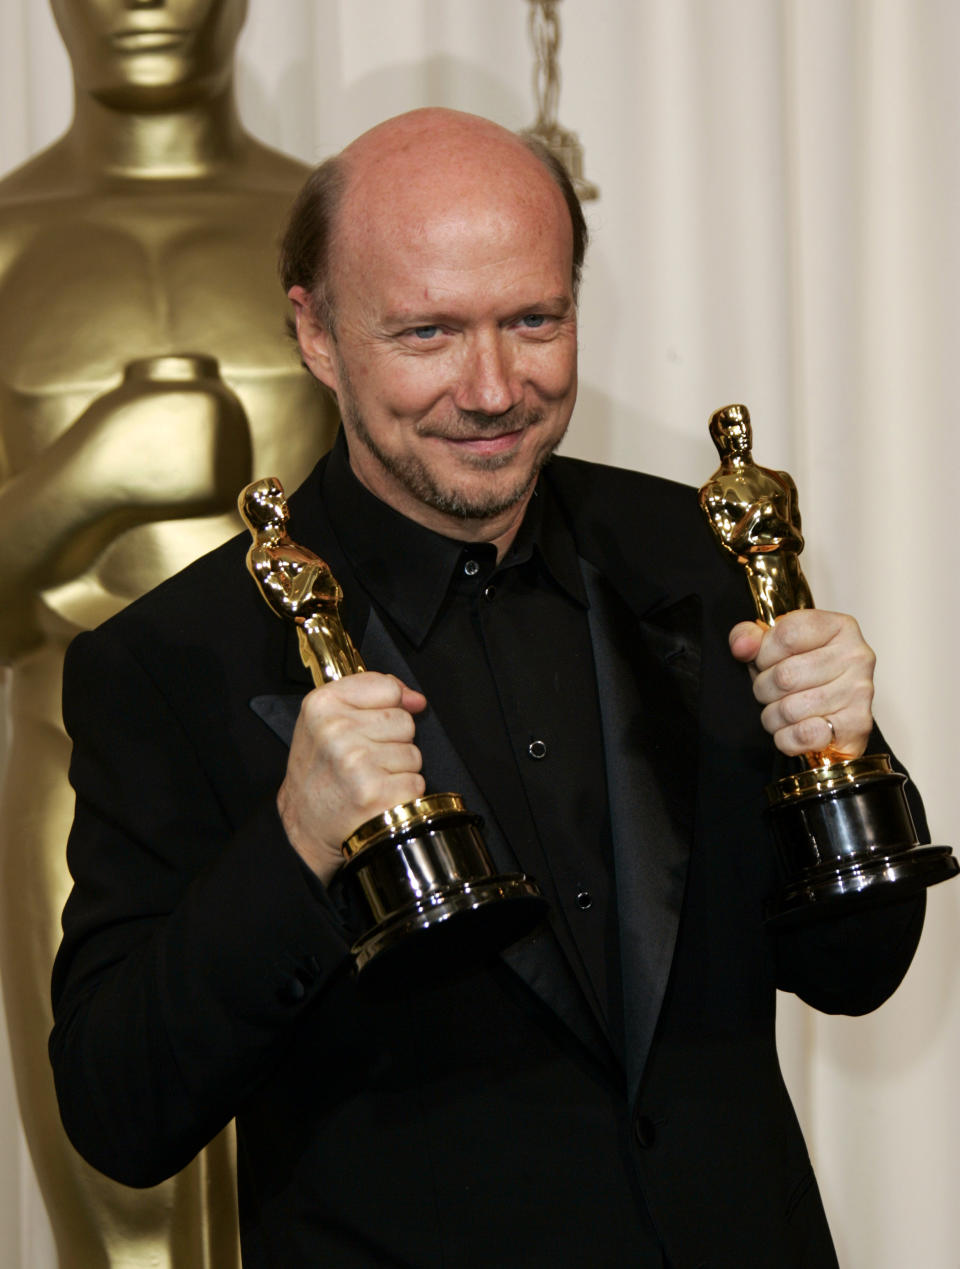 Director Paul Haggis poses with the two Oscars he won for best motion picture of the year and best original screenplay at the 78th Academy Awards Sunday, March 5, 2006, in Los Angeles. (AP Photo/Kevork Djansezian)